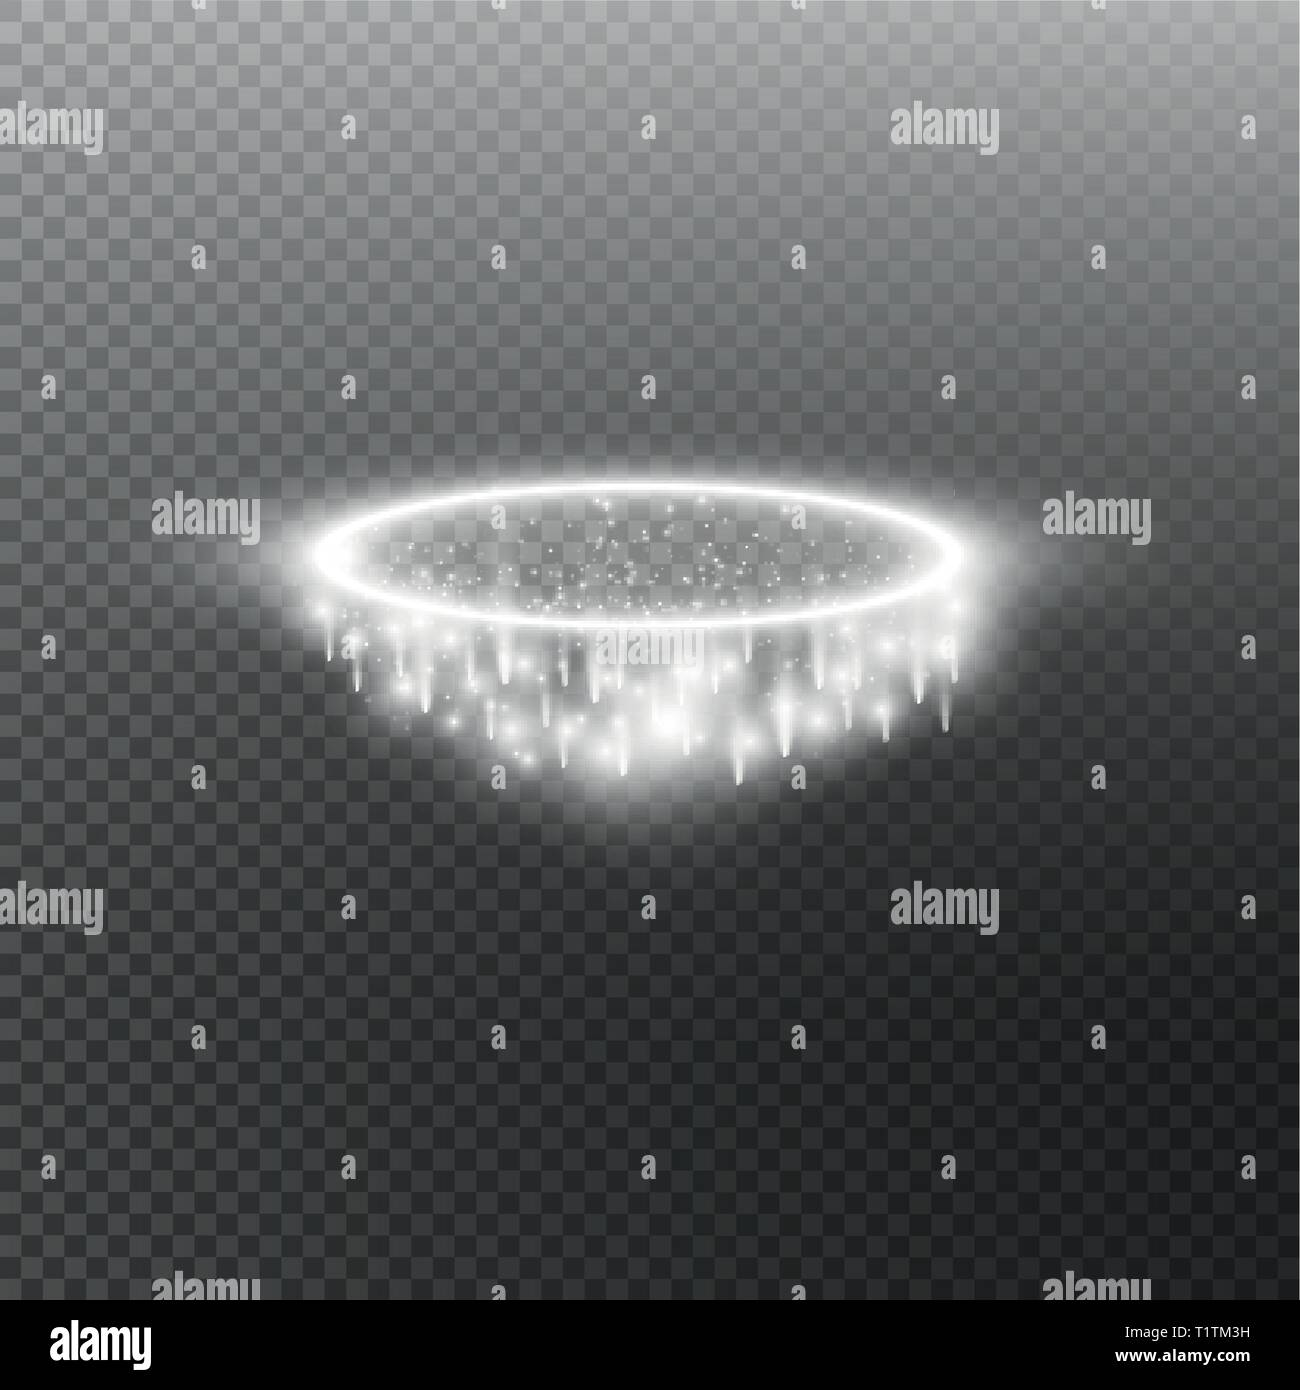 Angel Halo High Resolution Stock Photography And Images Alamy Prince fatty — angel with no halo dub 03:39. https www alamy com white halo angel ring isolated on black transparent background vector illustration image242102437 html